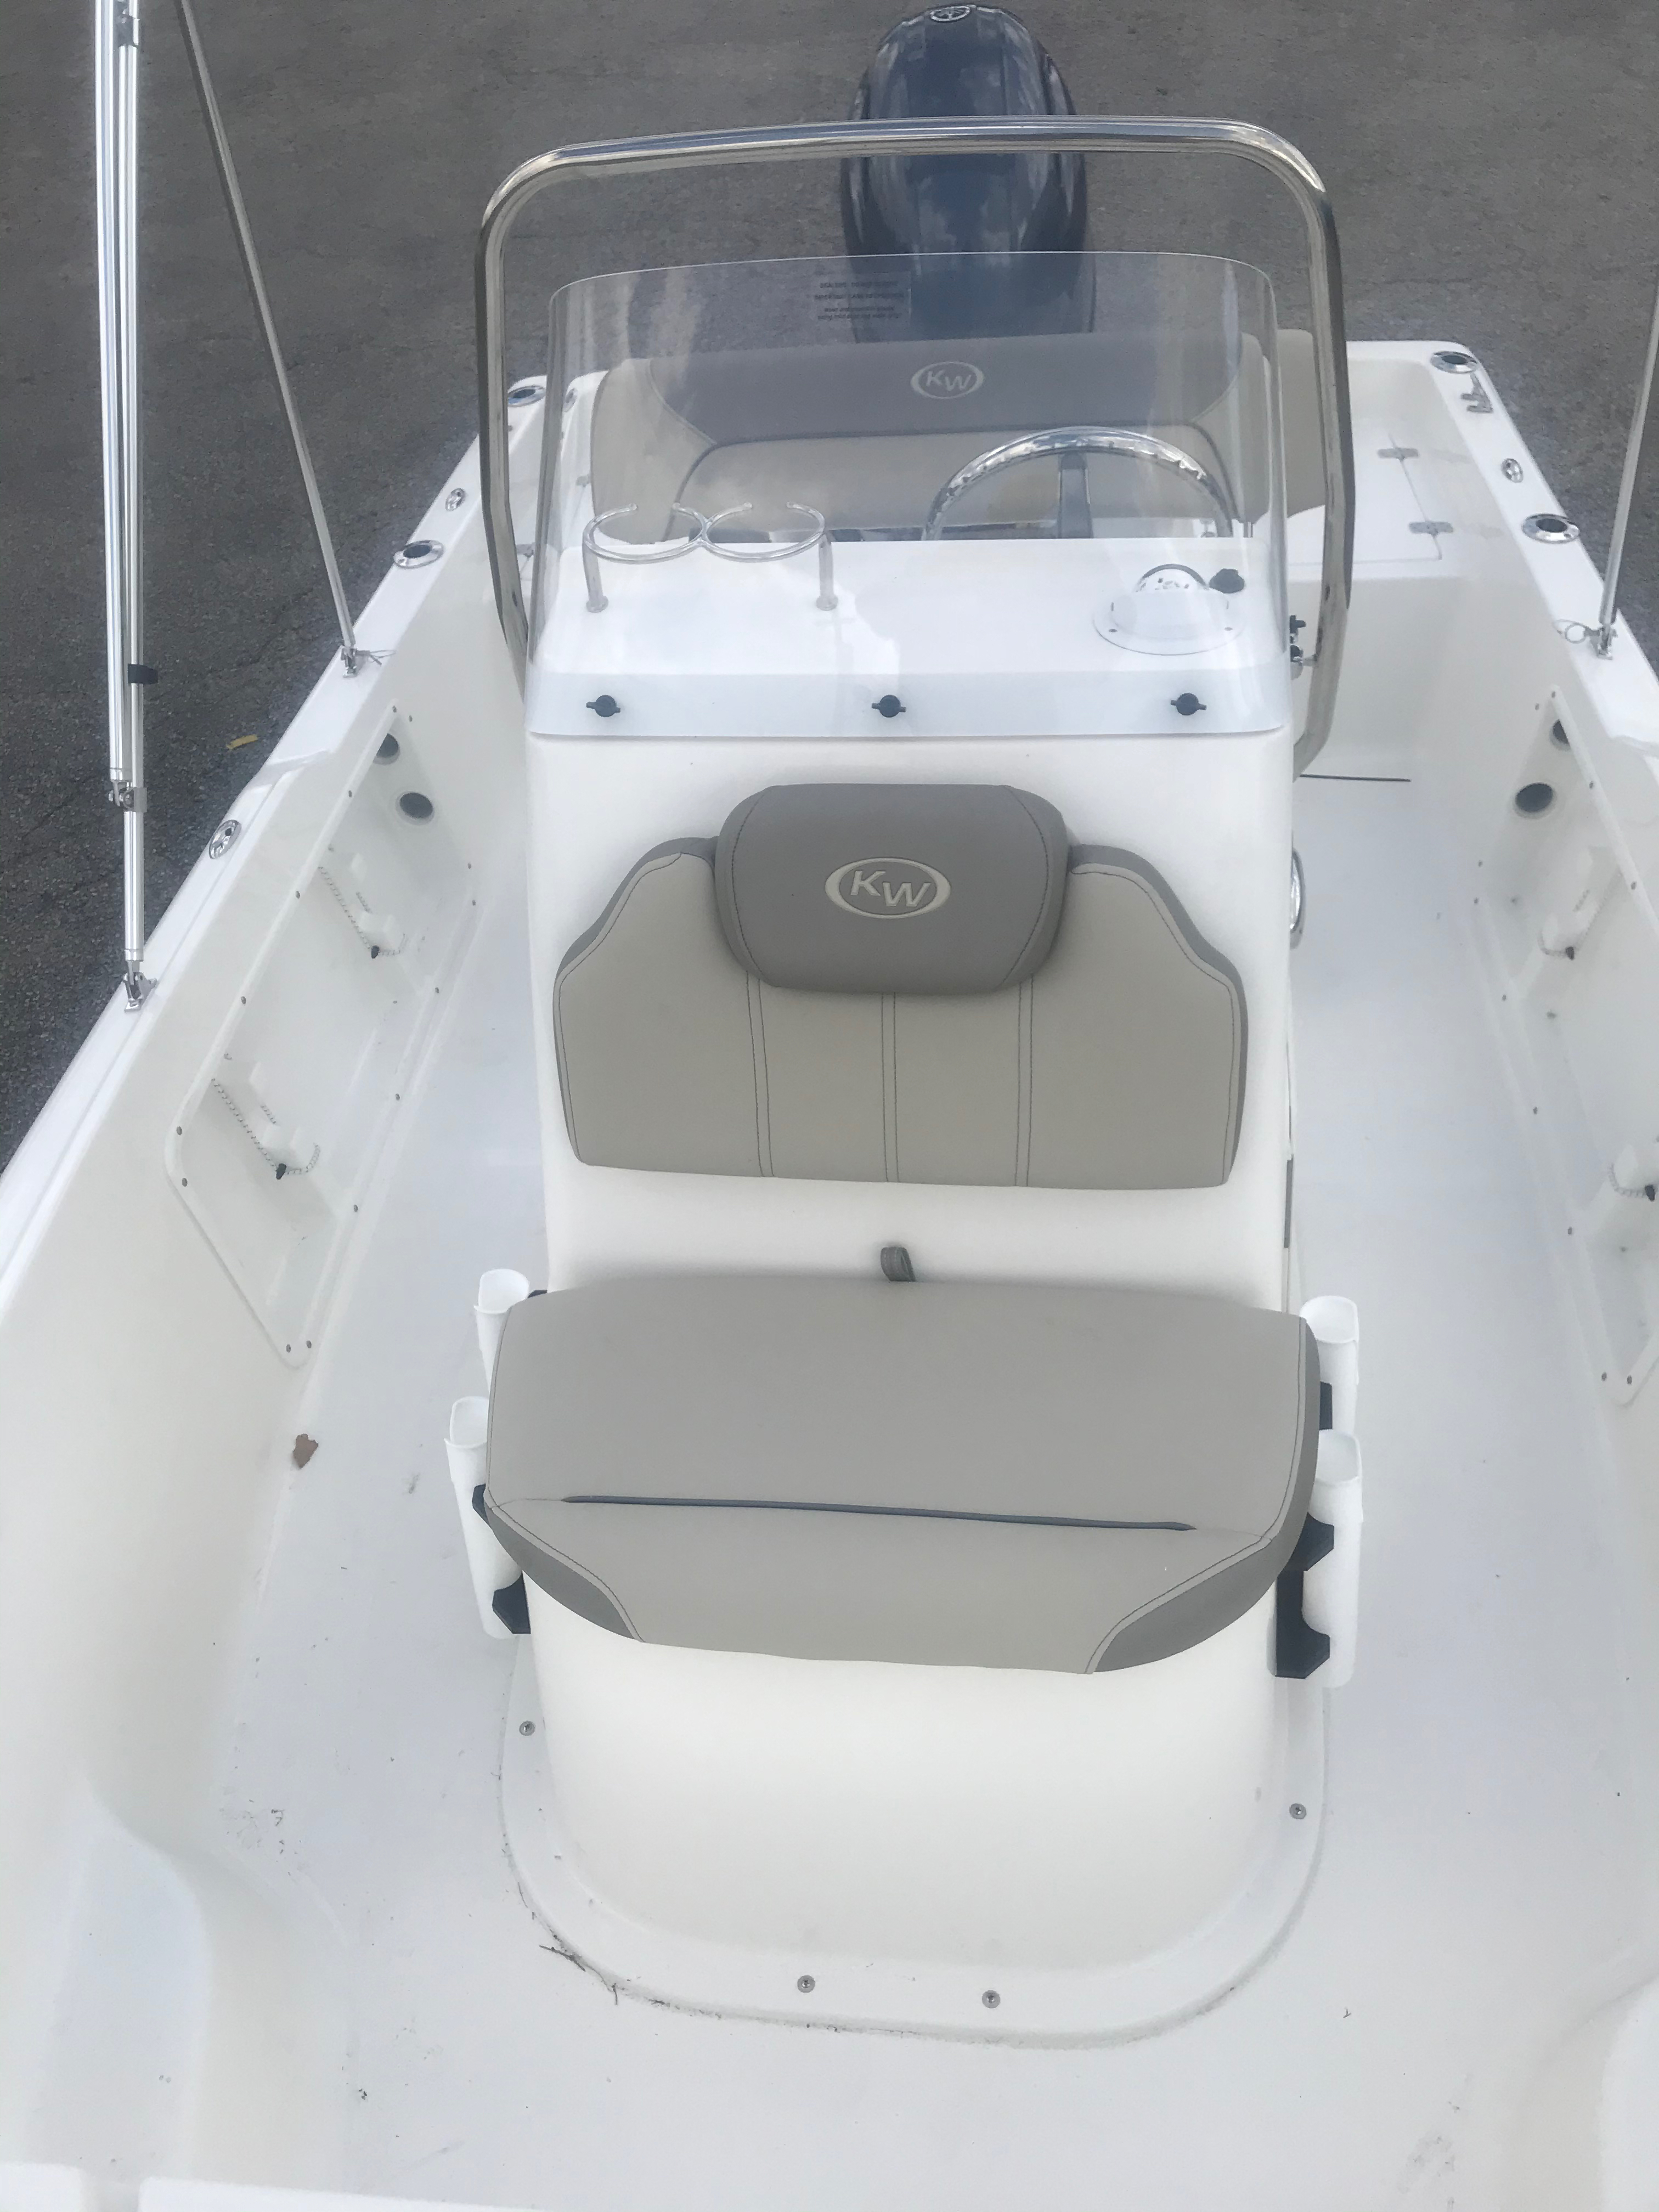 2021 Key West boat for sale, model of the boat is 1720CC & Image # 7 of 7